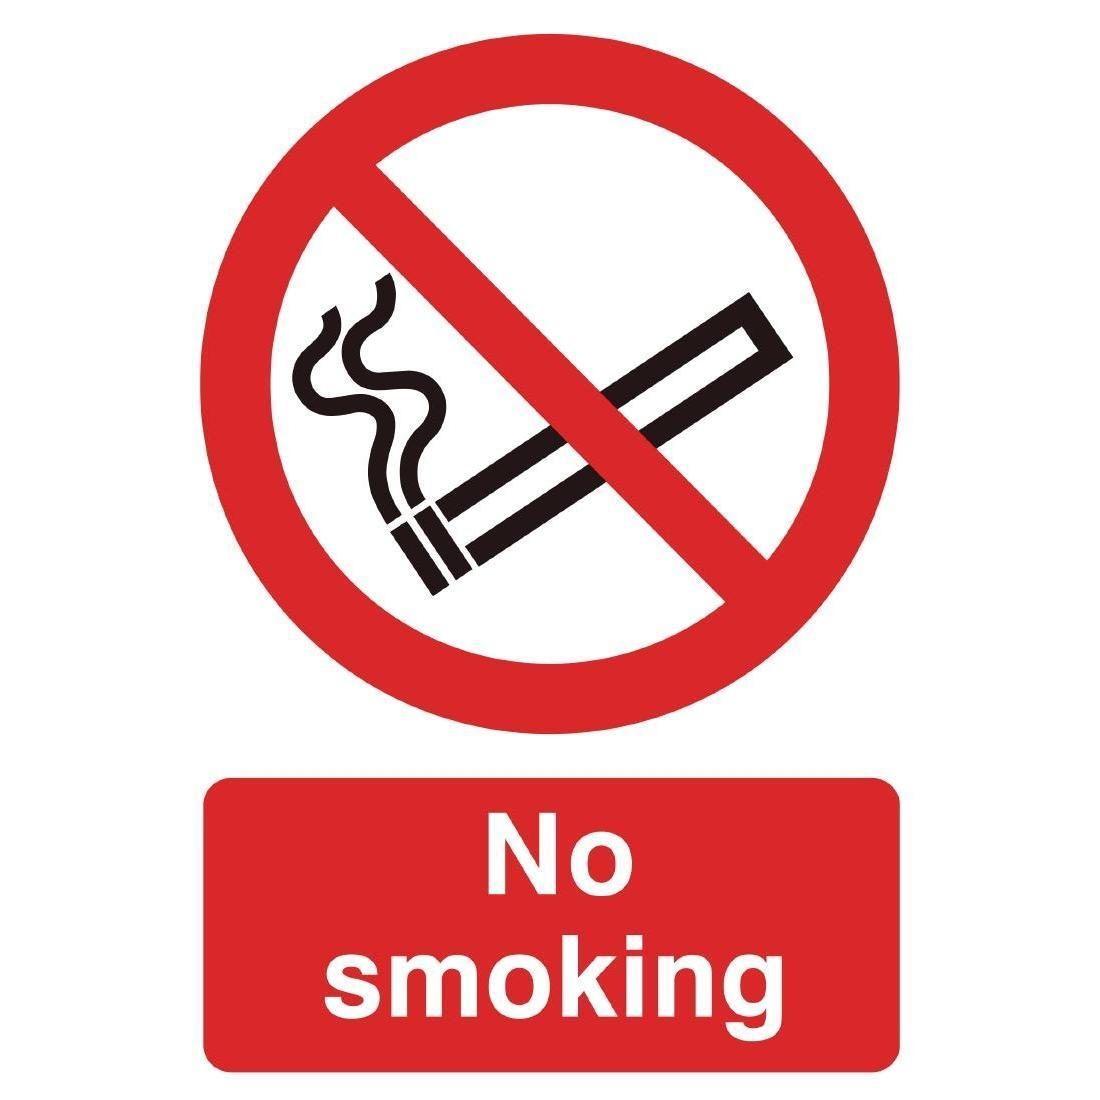 PVC No Smoking Symbol Sign - W391